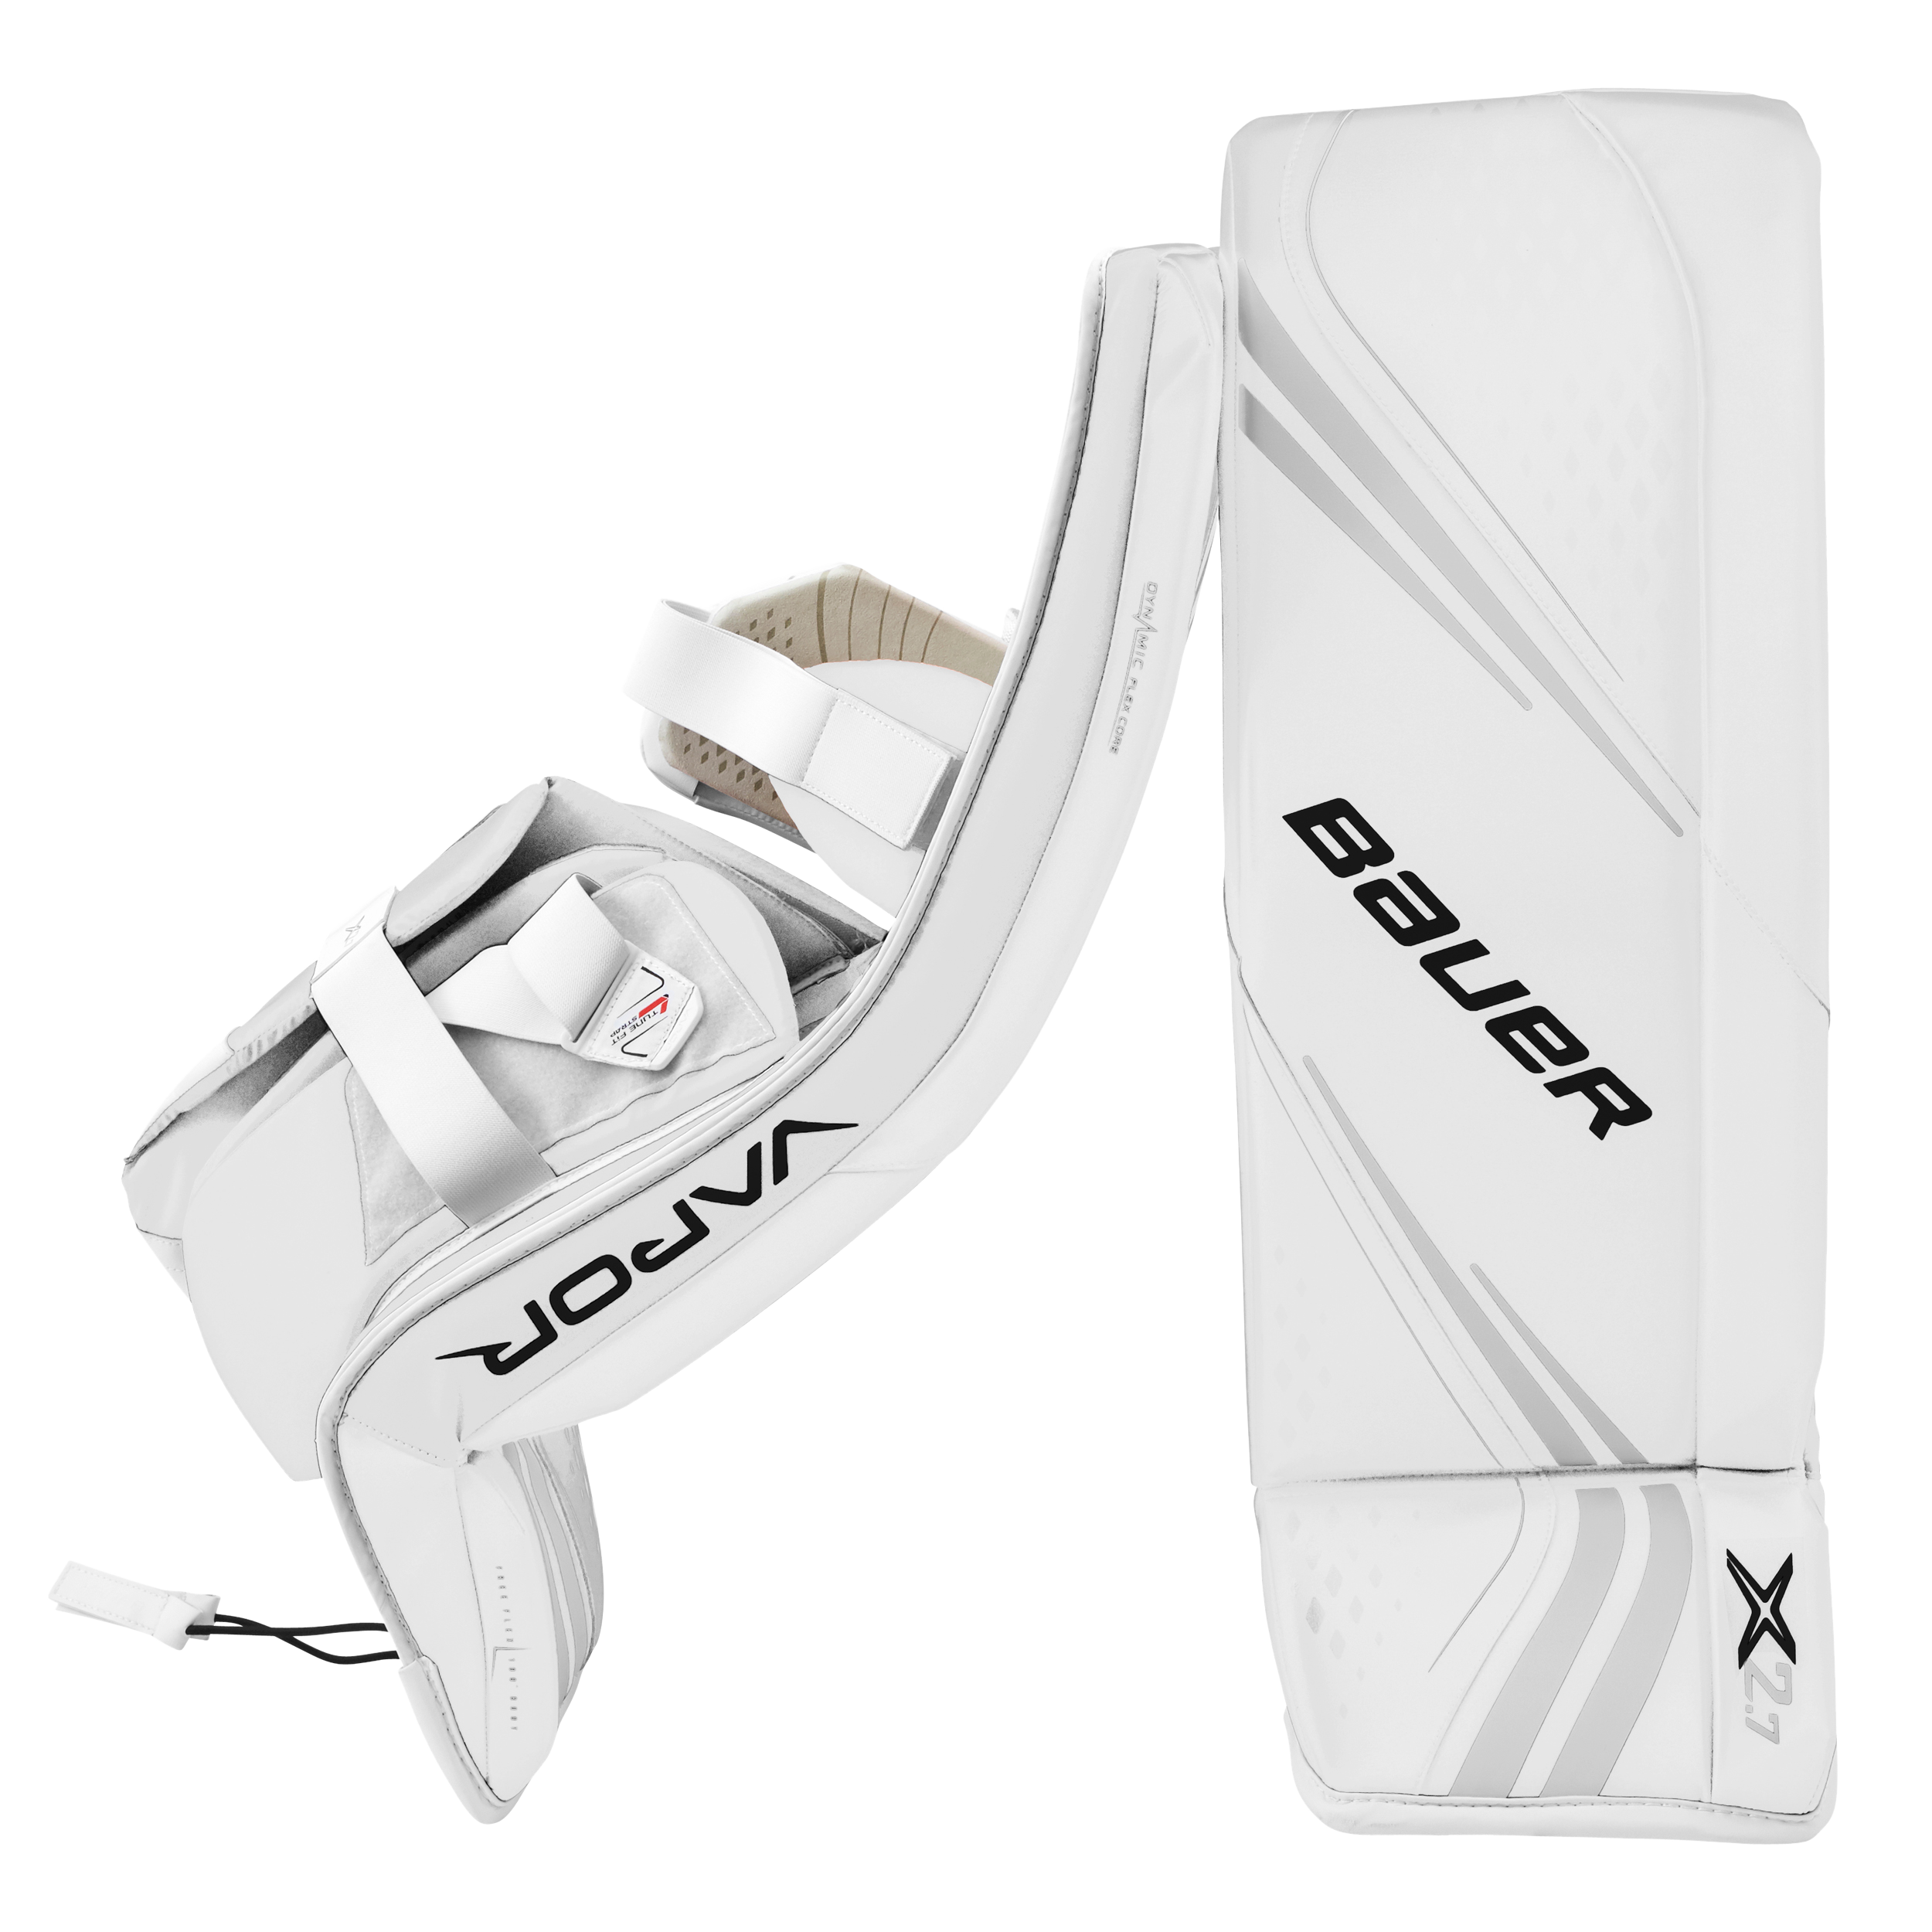 Vapor X2.7 Goal Pad Senior,,Medium